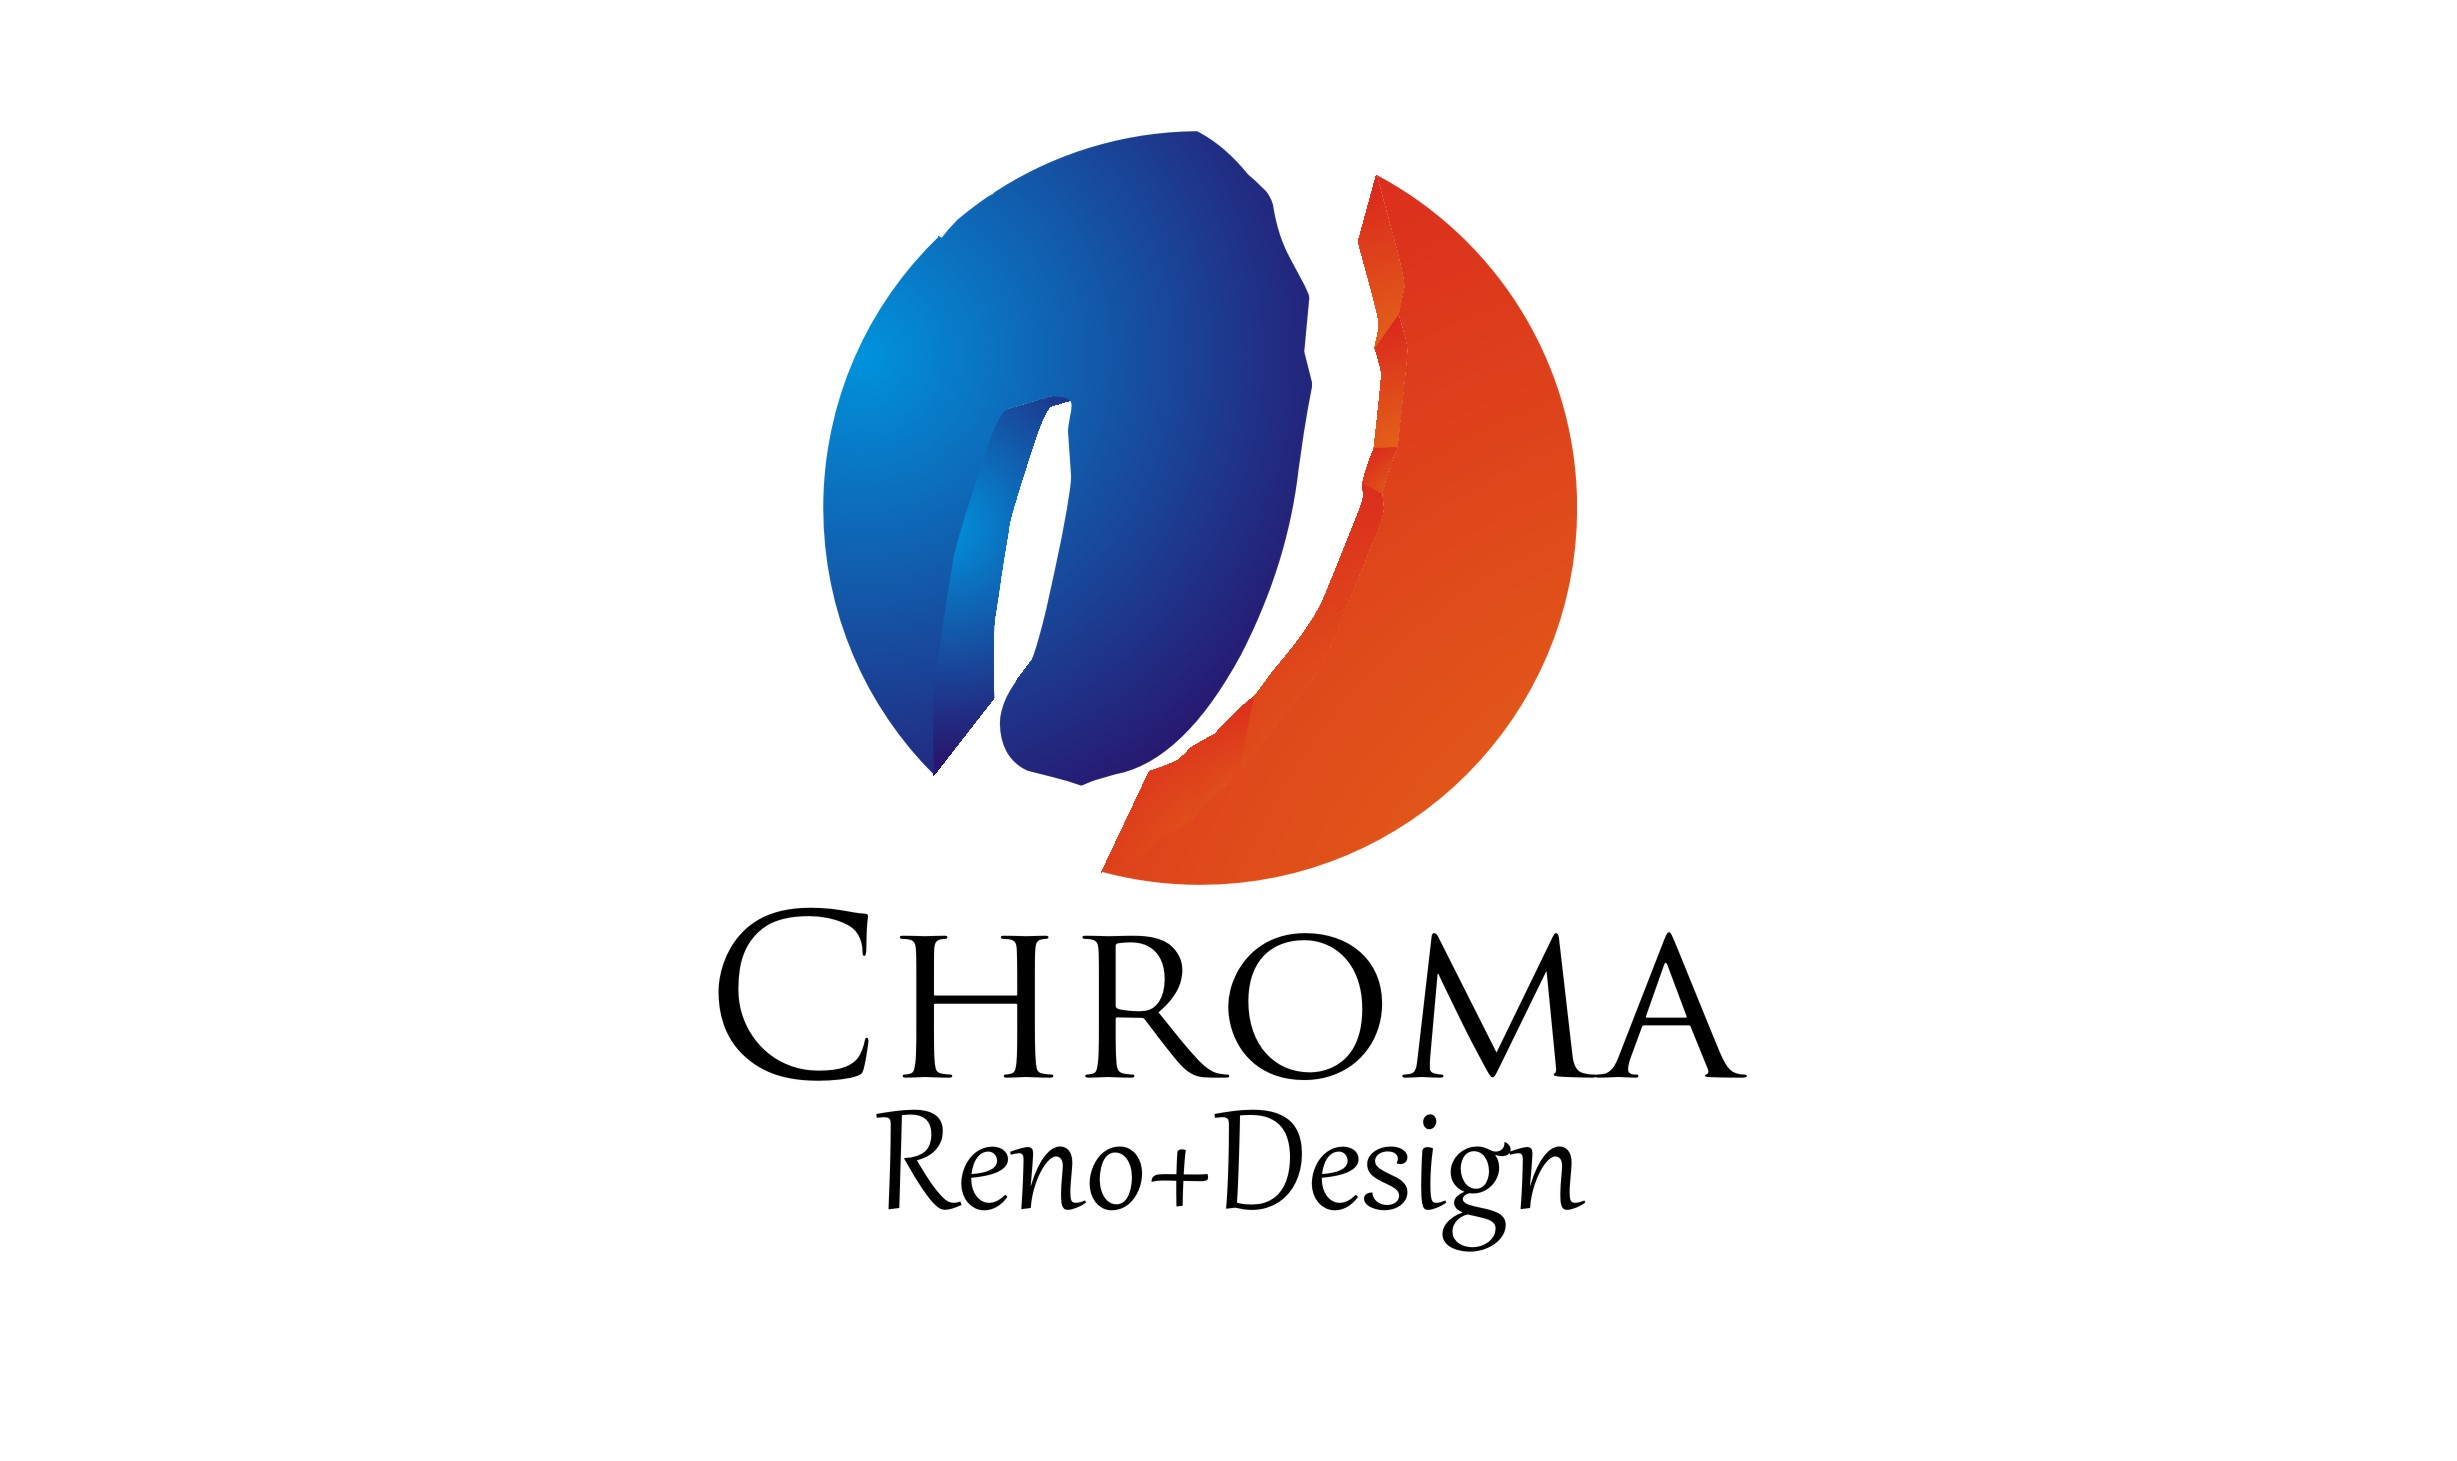 Logo Design by Josri Vengeance - Entry No. 277 in the Logo Design Contest Inspiring Logo Design for Chroma Reno+Design.